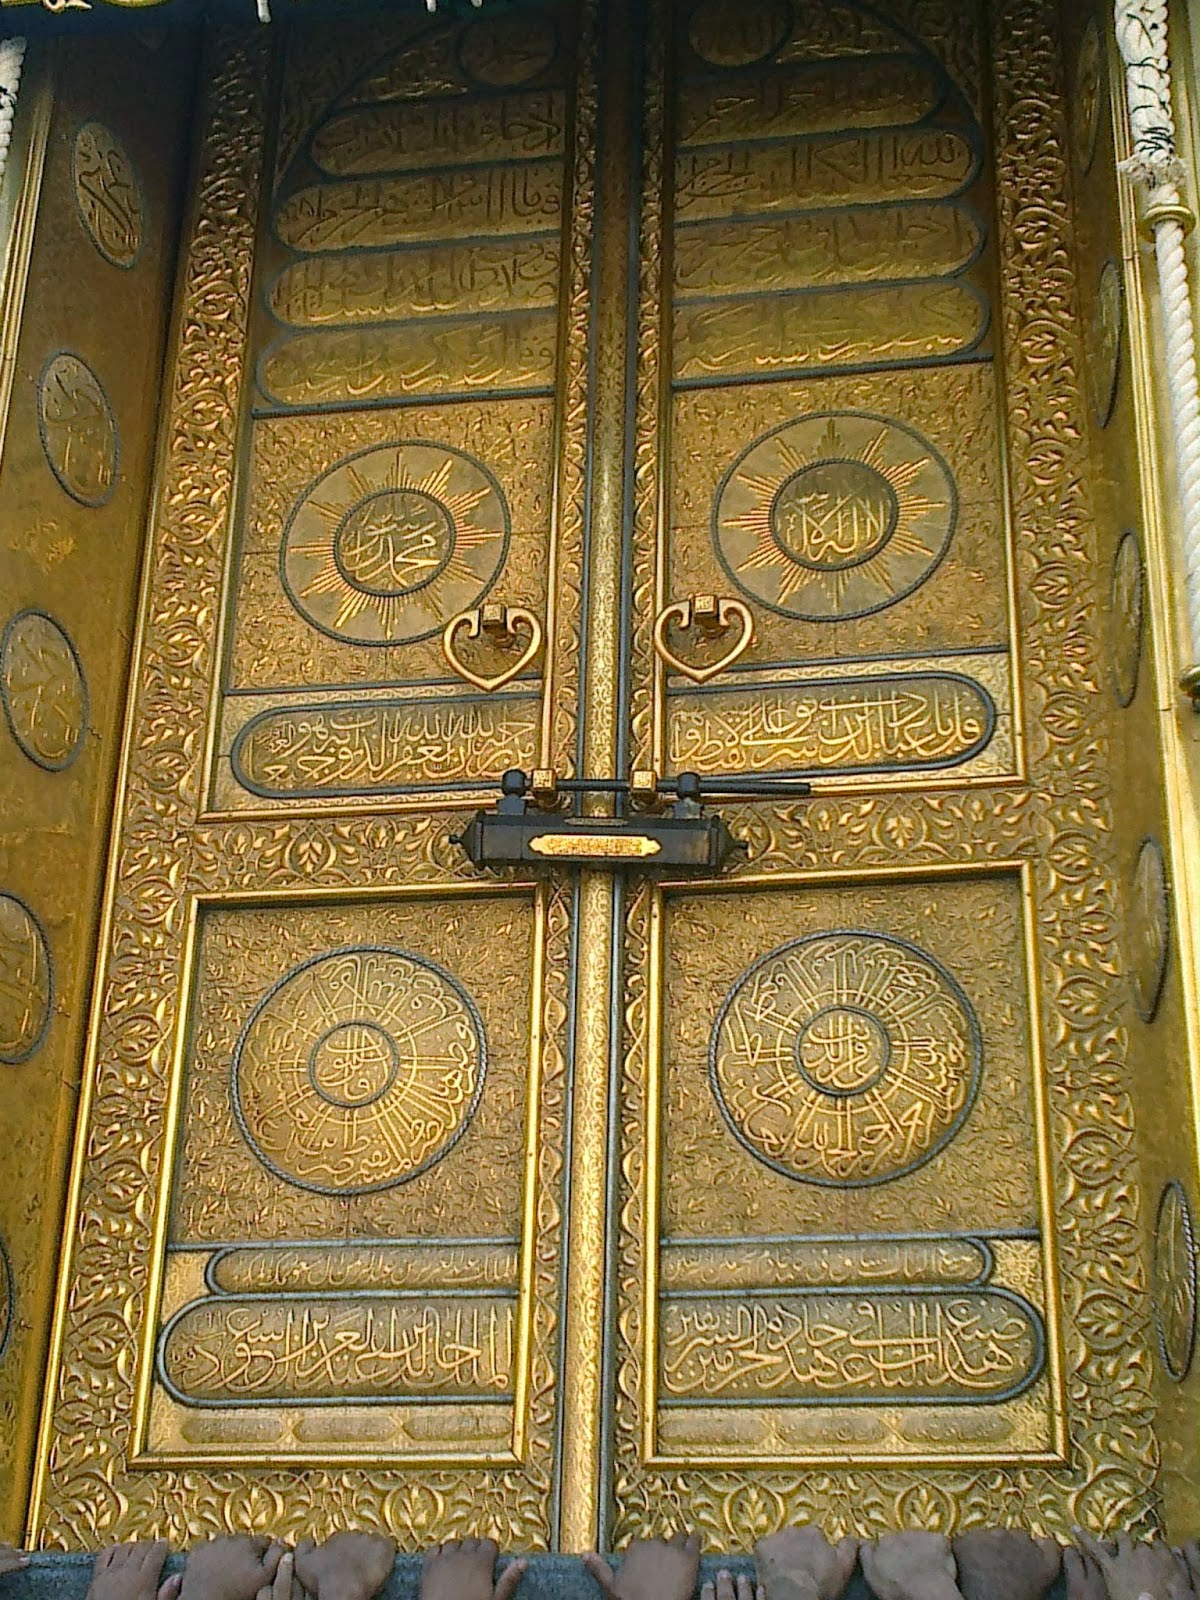 Khana Kaba Door Islamic Latest Wallpapers Free Download 2014 HD Images Pictures u0026 Photos Cards For Twitter or Facebook Covers u0026 Profiles 1080p u0026 720p & Khana Kaba Door Islamic Latest Wallpapers Free Download 2014 HD ...